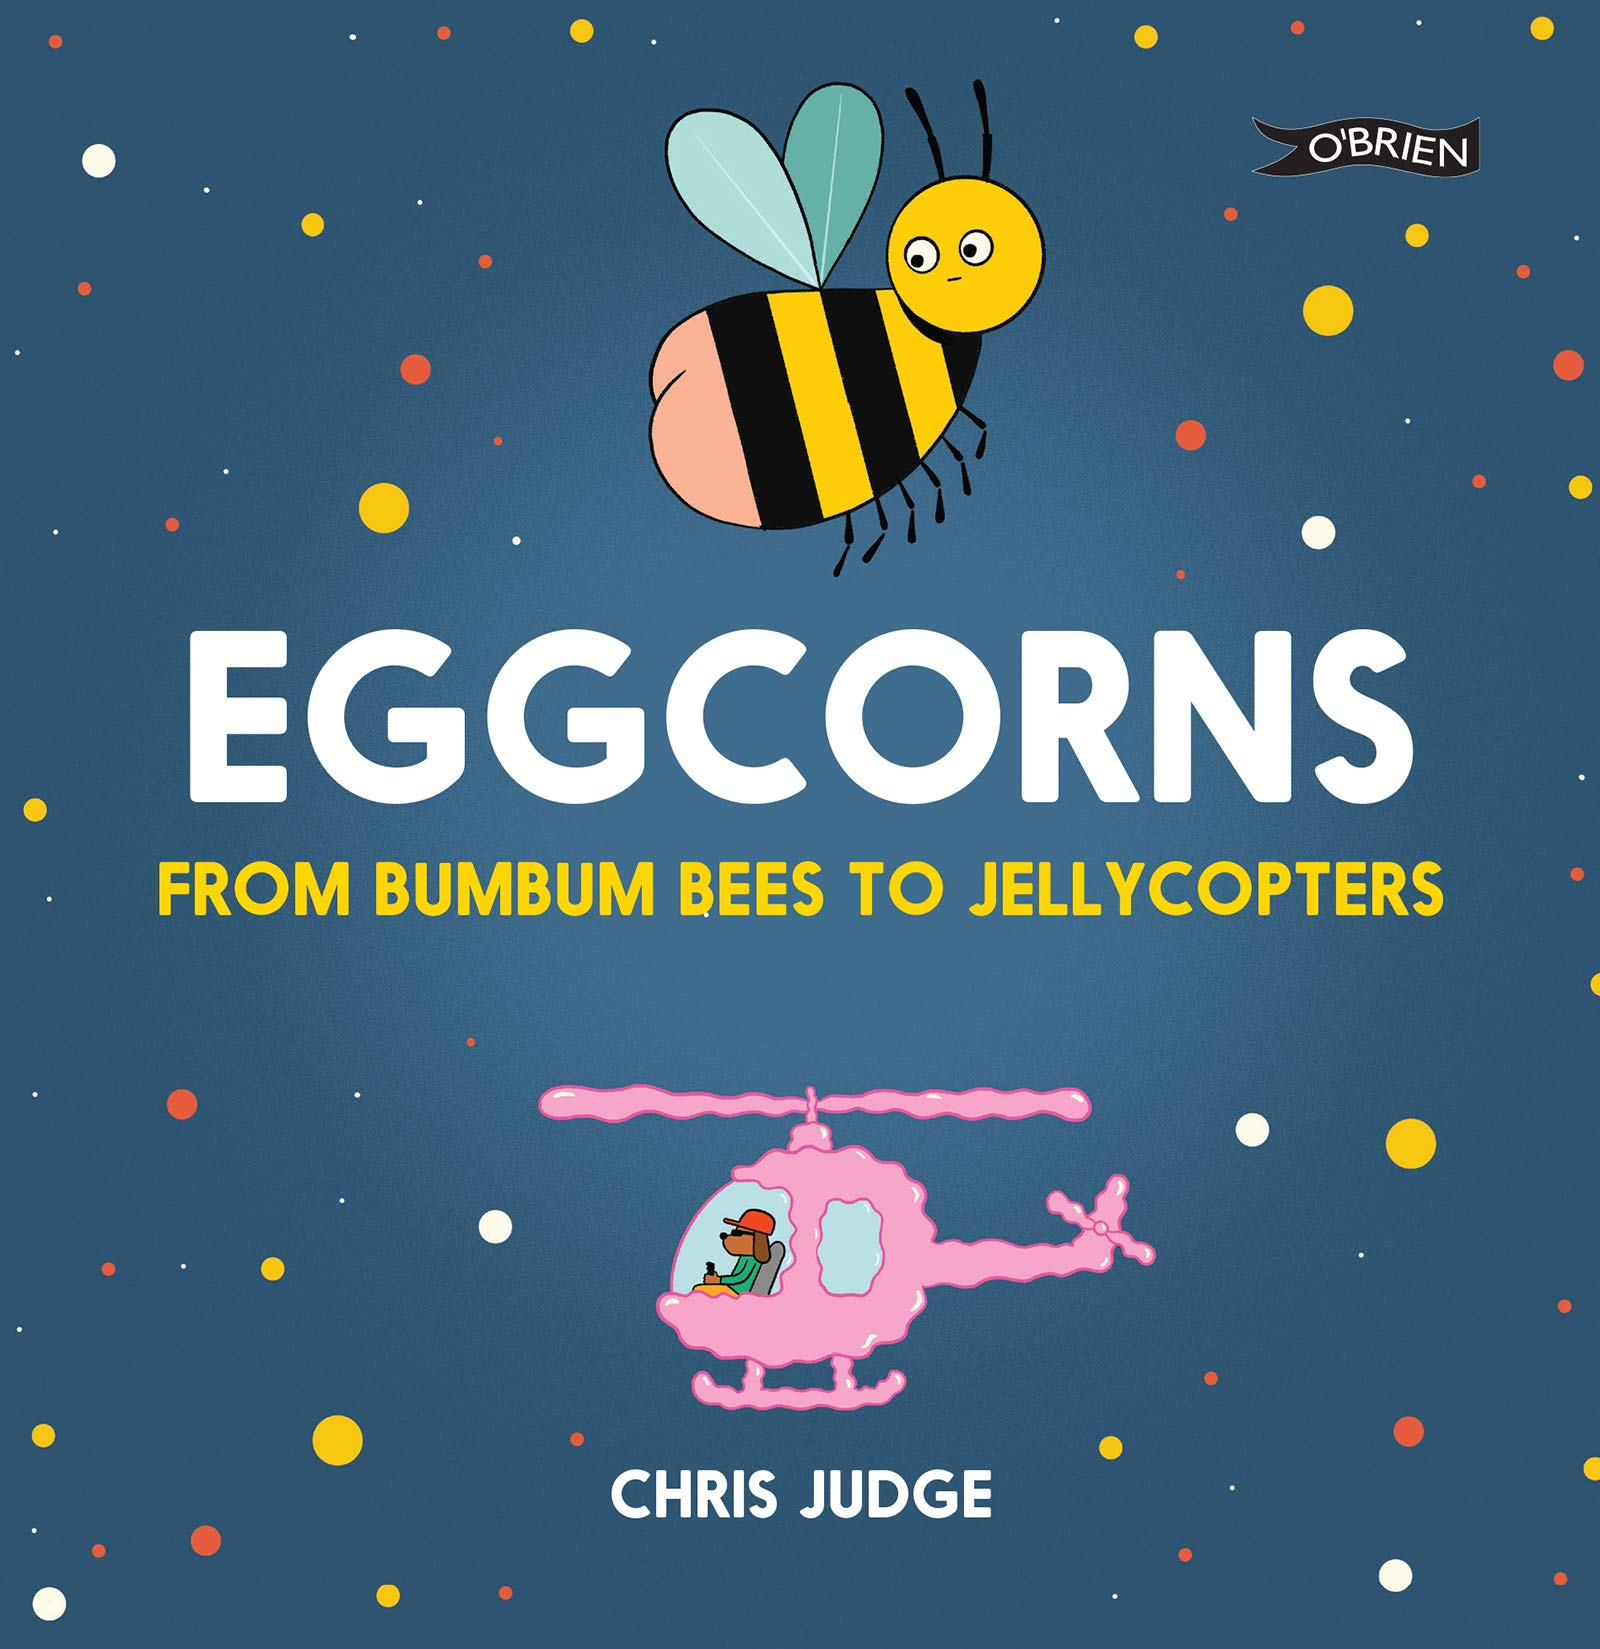 Eggcorns | Chris Judge | Charlie Byrne's